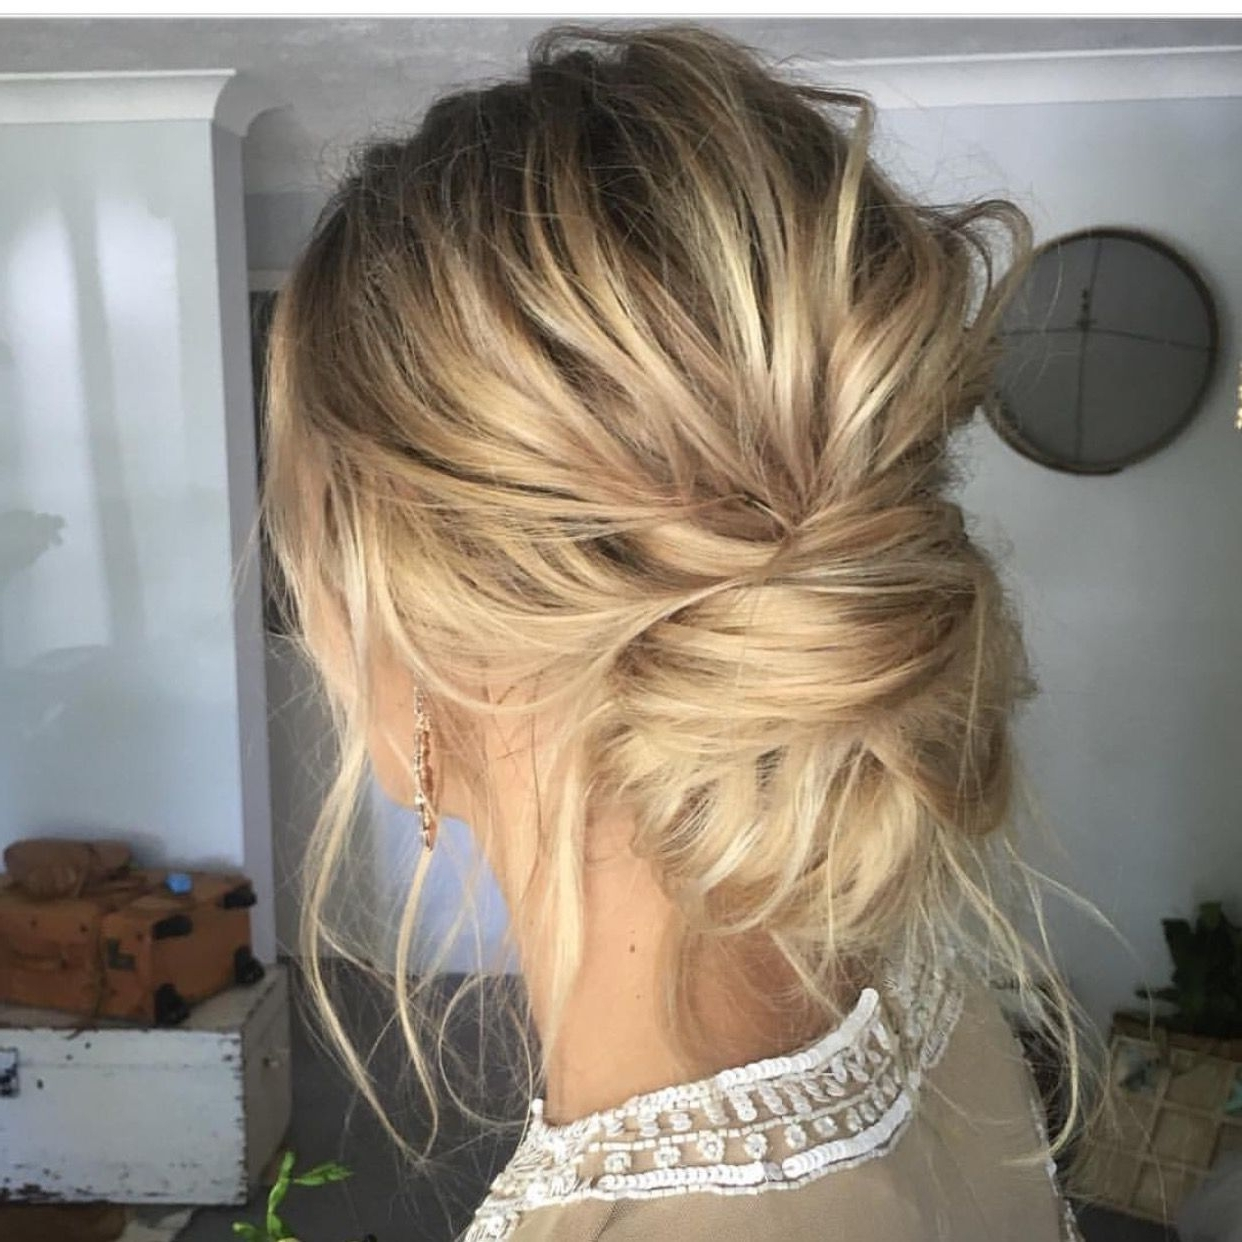 Hair Play, Twist Bun With Regard To 2018 Loose Messy Ponytail Hairstyles For Dyed Hair (View 10 of 20)